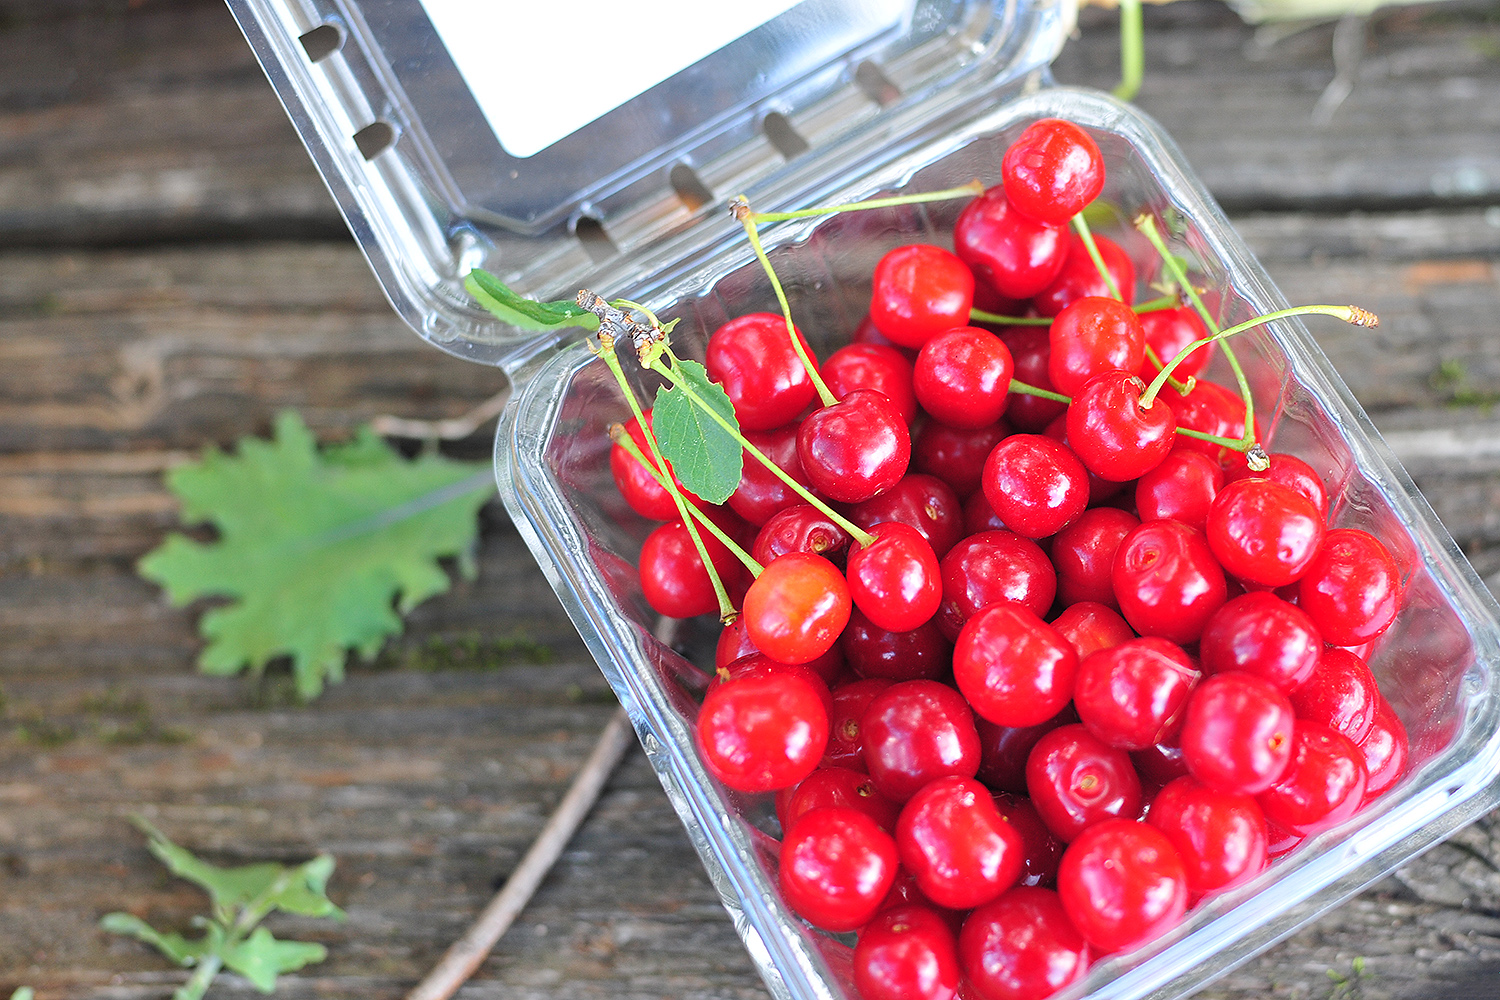 The farm's sole cherry tree produced a few handfuls of berries for the June 27 market.